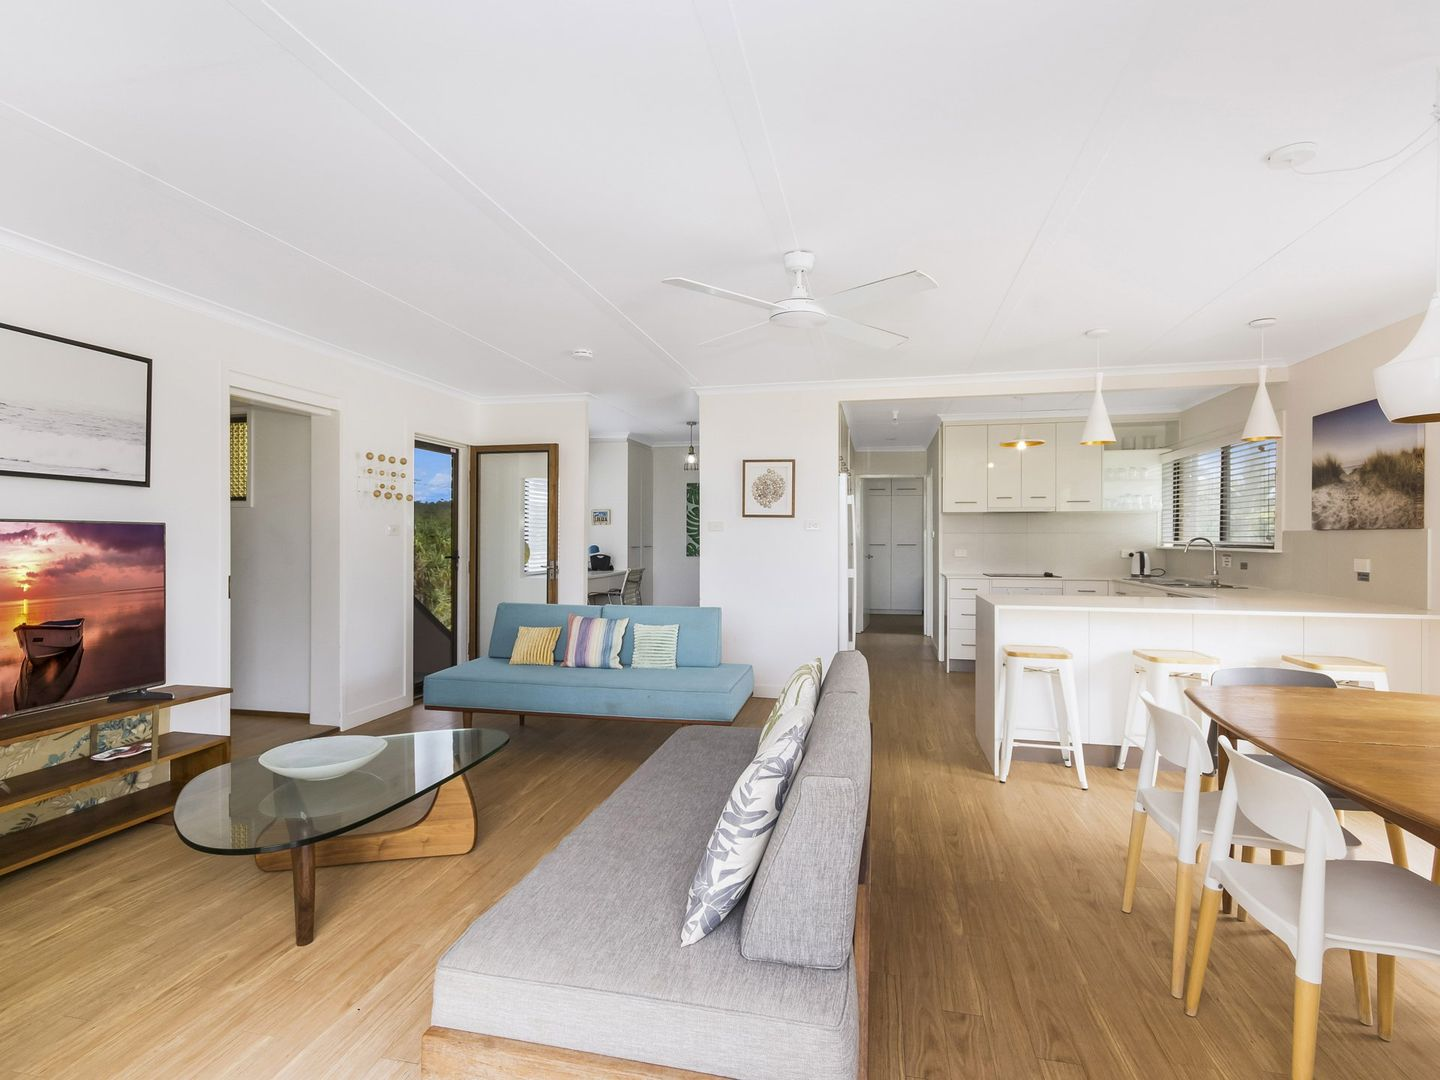 10 Patchs Beach Lane, Patchs Beach NSW 2478, Image 0